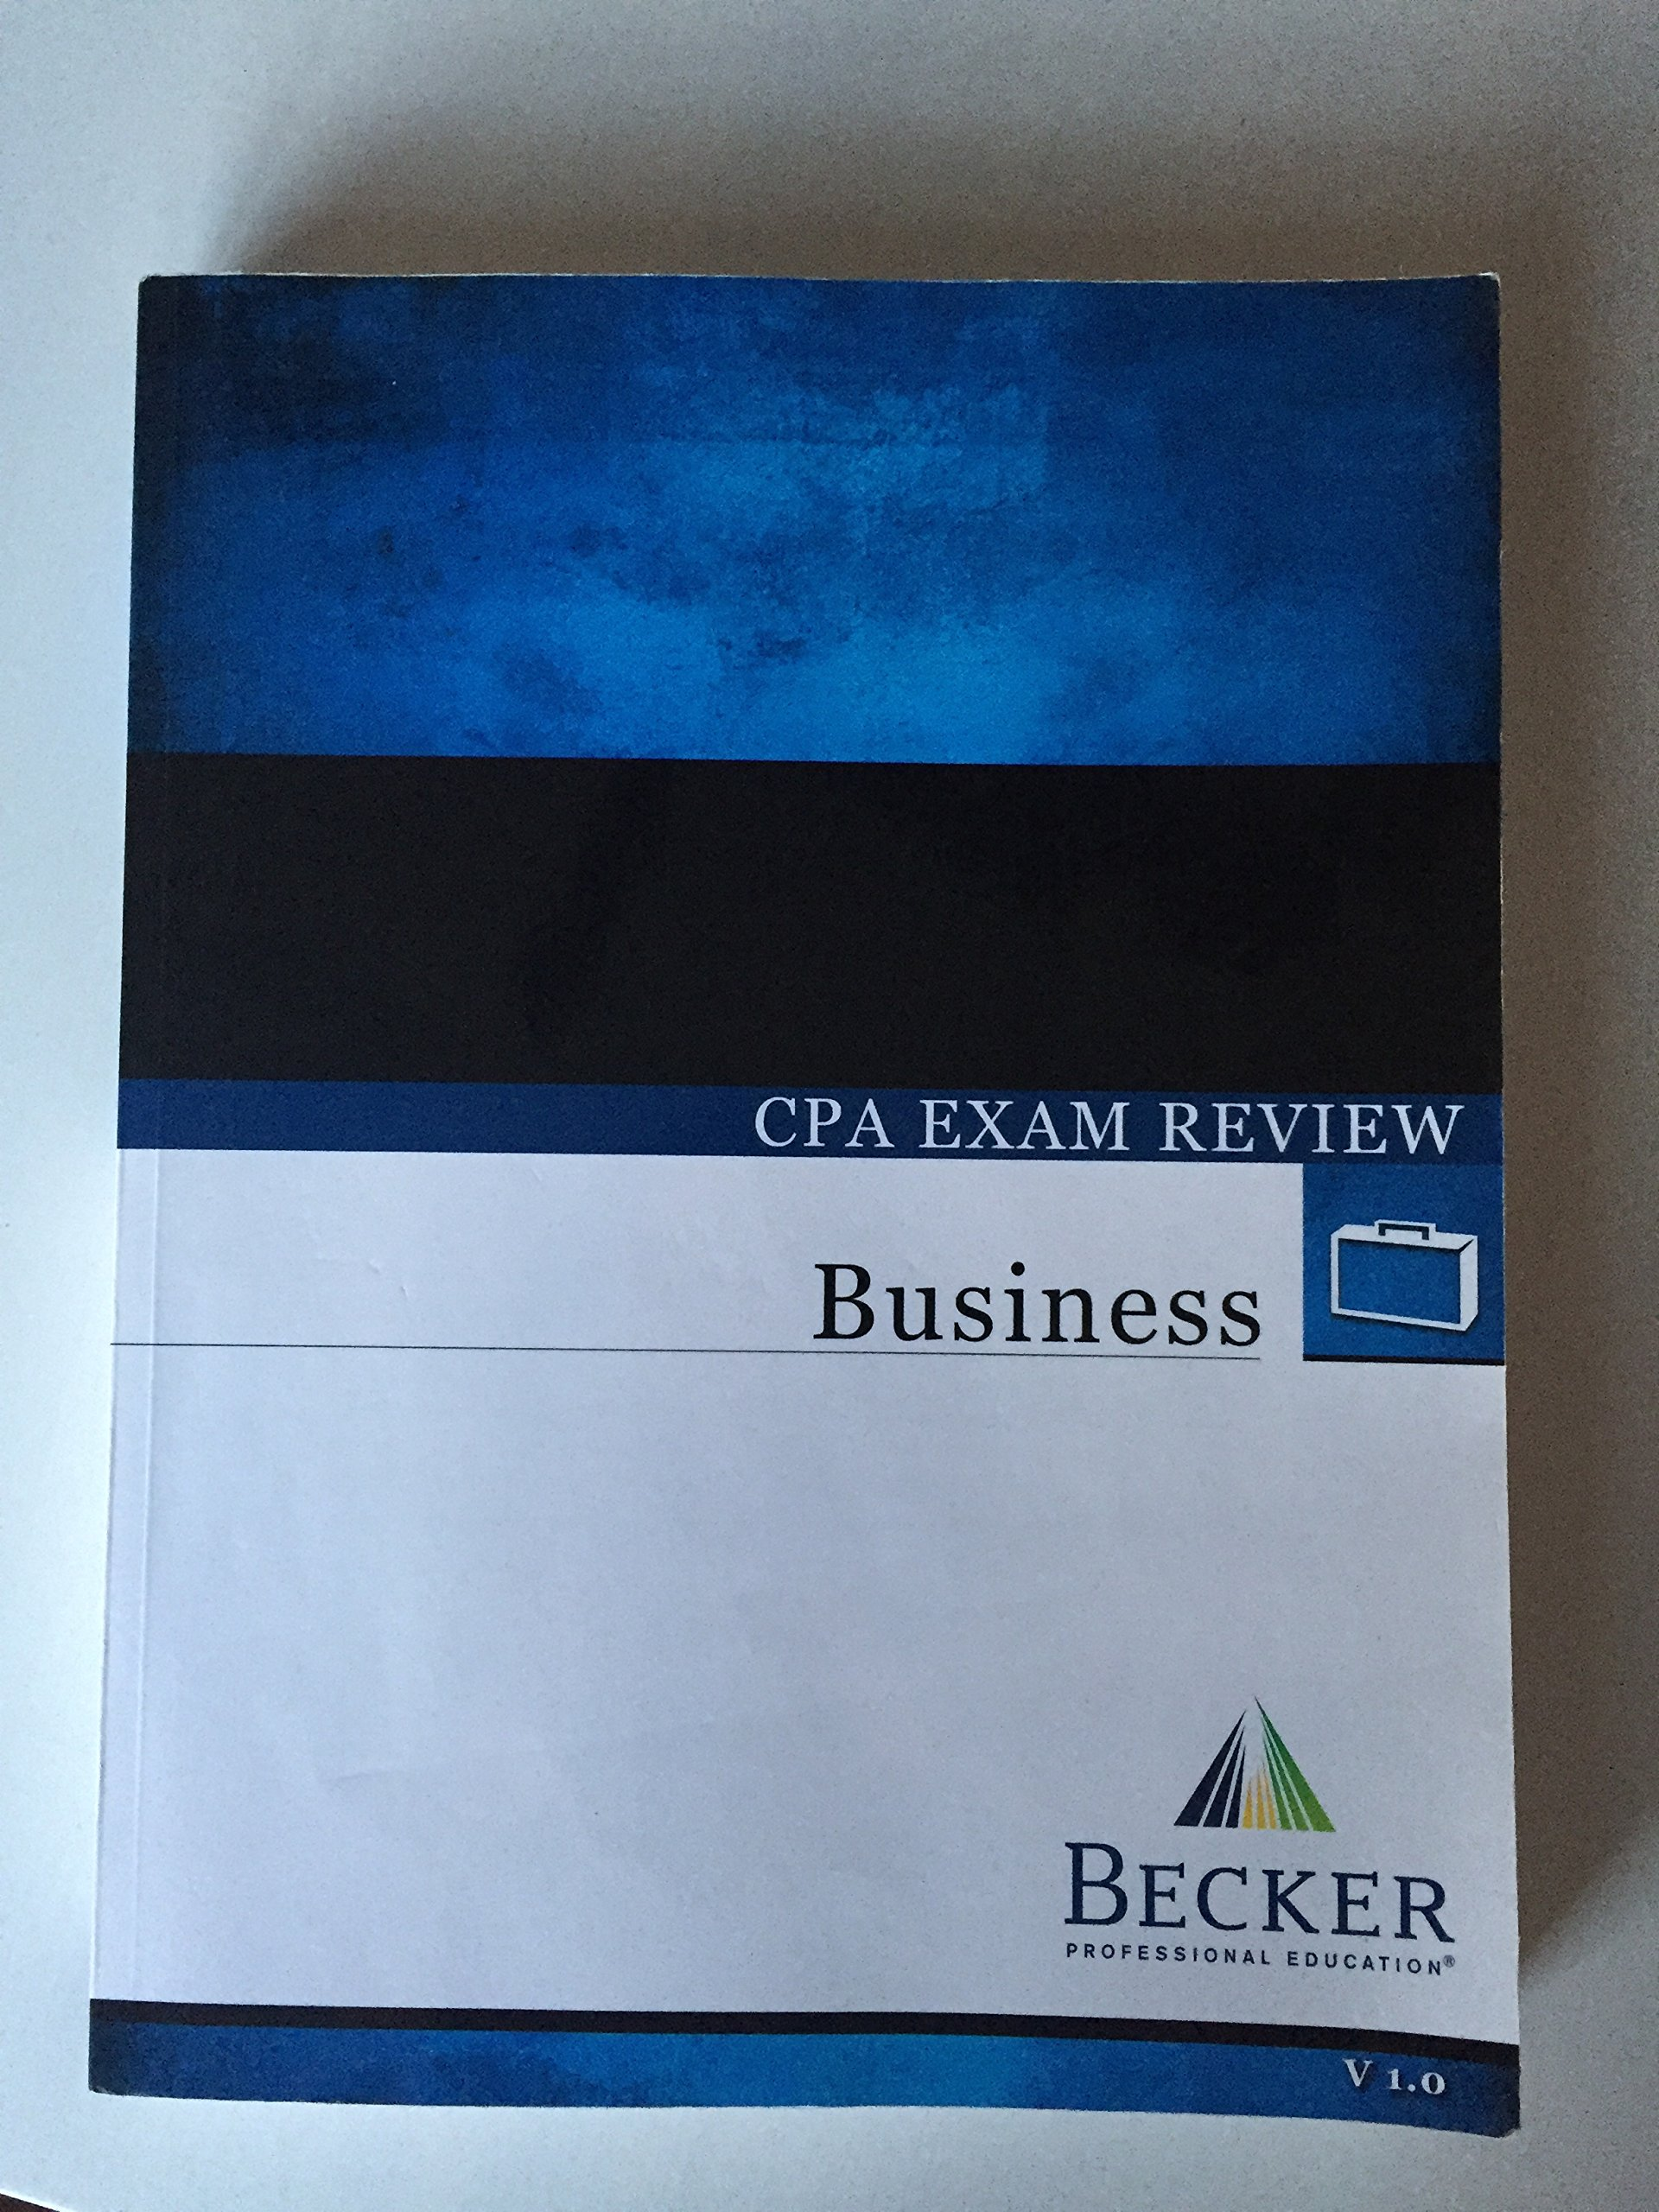 Becker cpa exam review business bec 2014 amazon books fandeluxe Choice Image